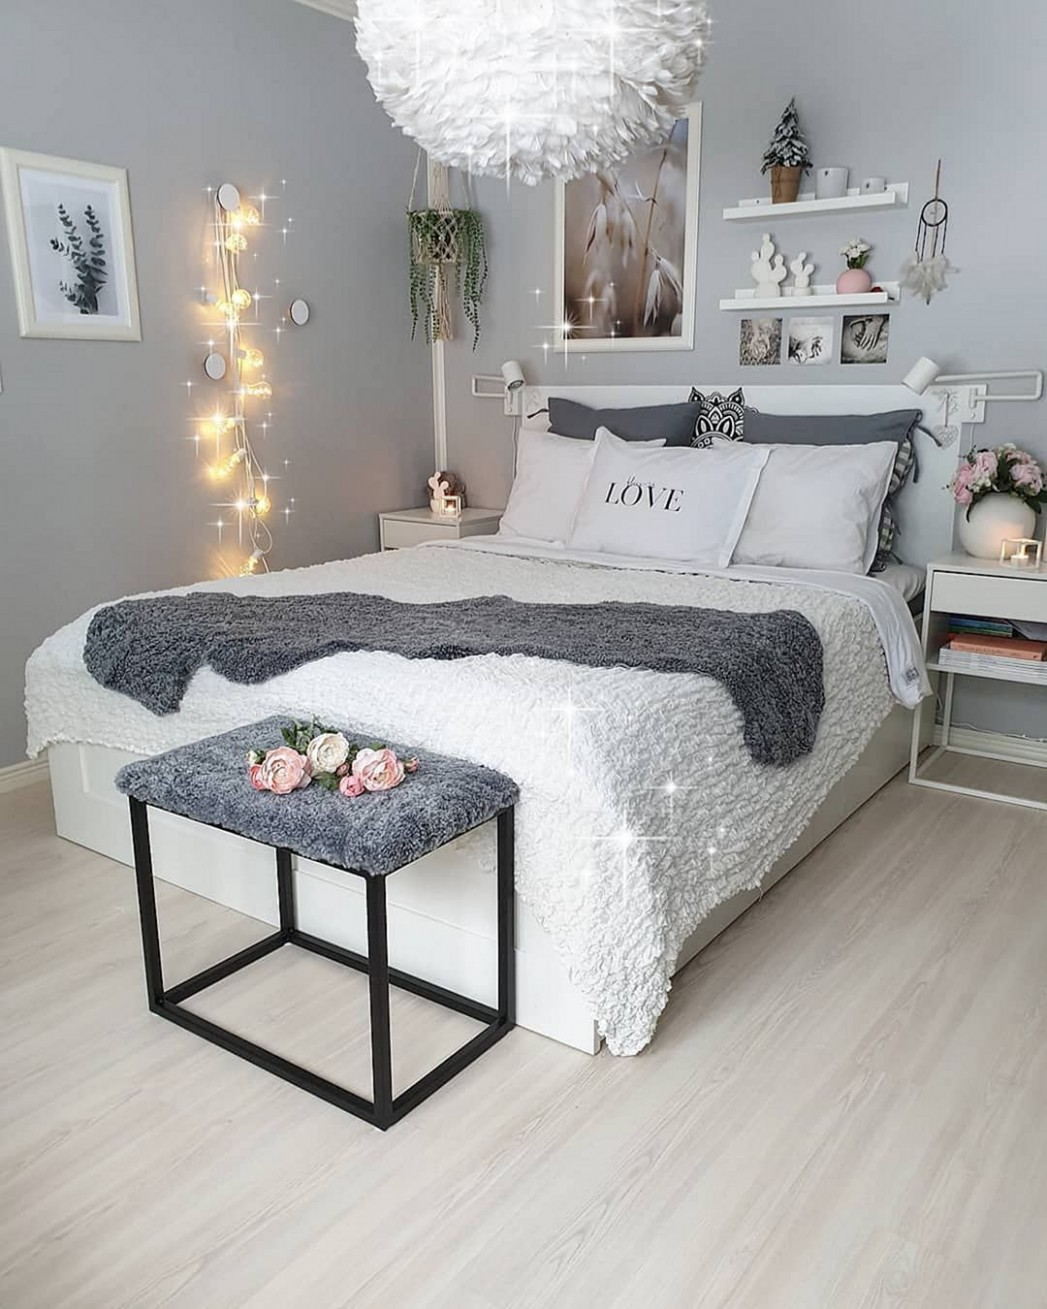 8 Gorgeous Small Bedroom Decorating Ideas That Look More Stylish  - Bedroom Ideas B&Q